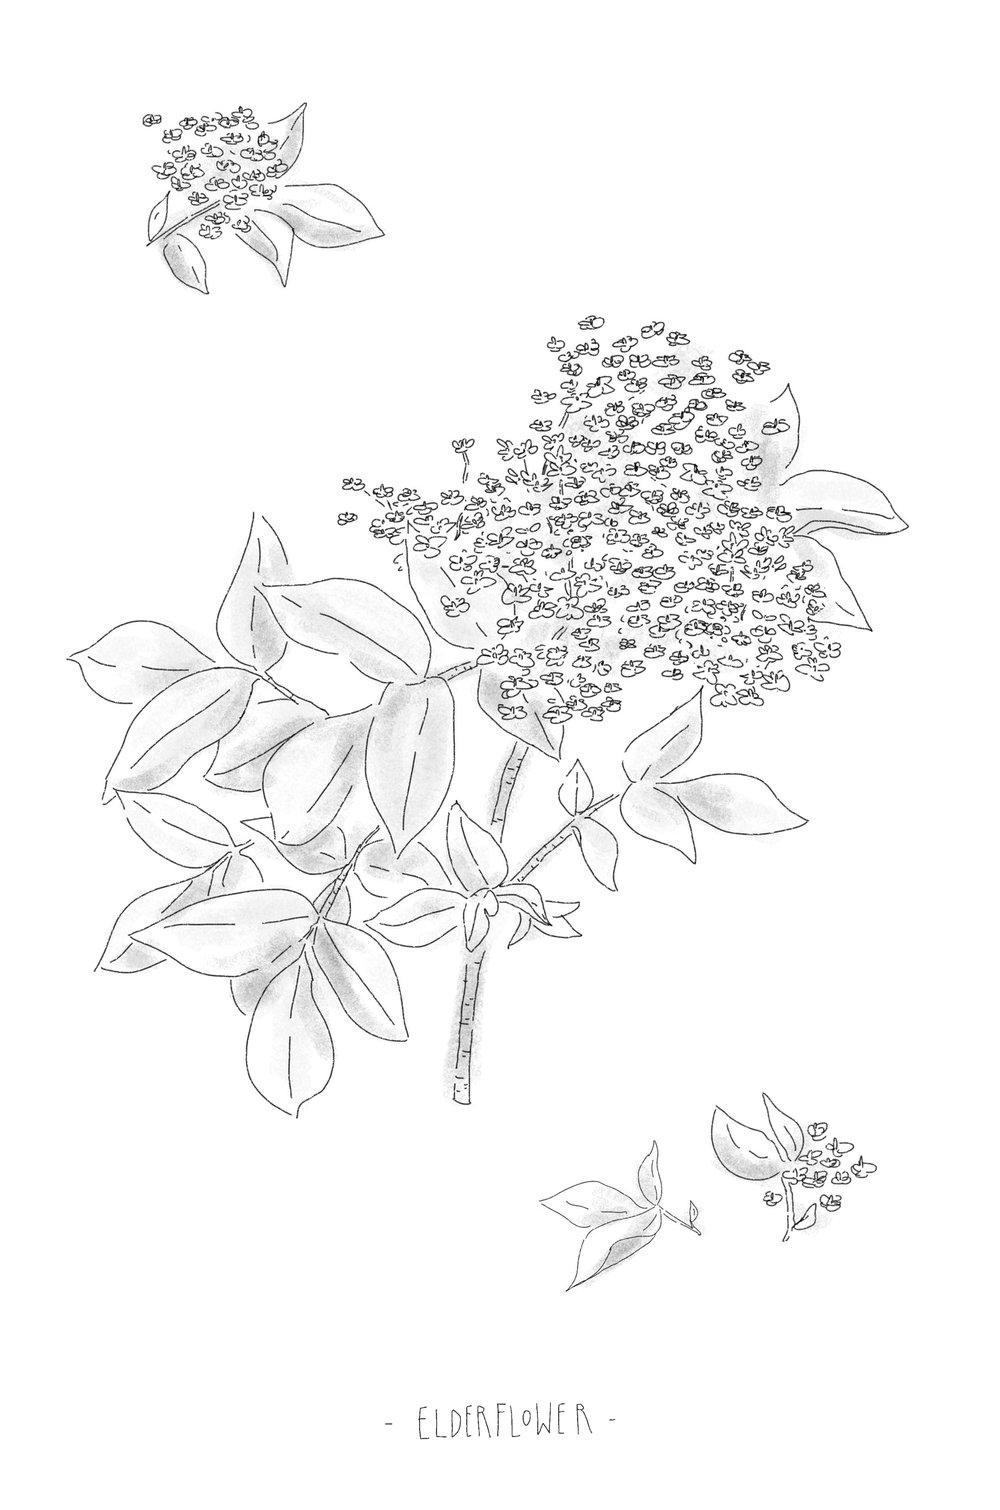 Elderflower m.jpg